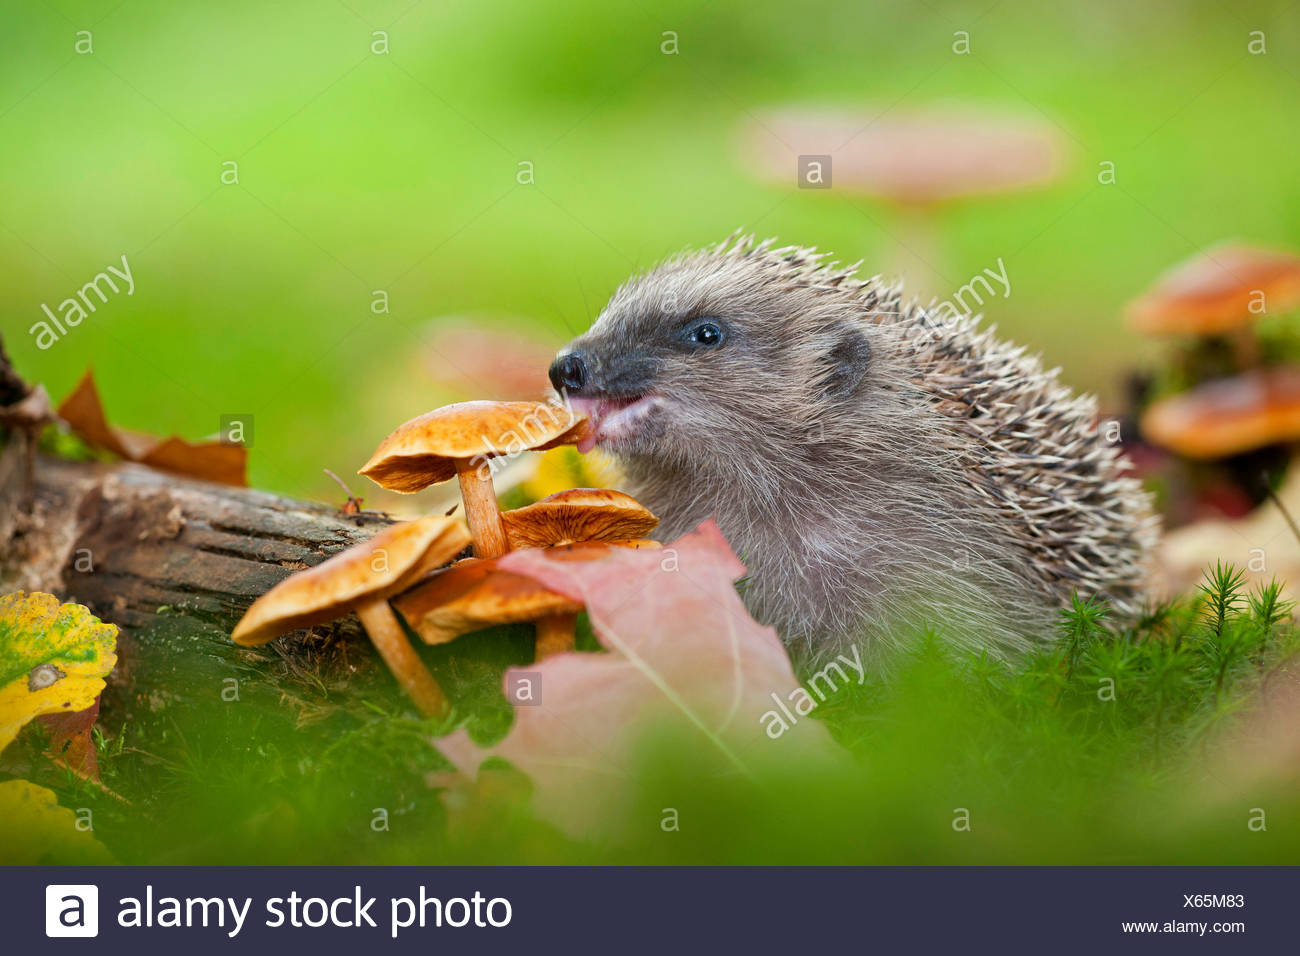 Western hedgehog, European hedgehog (Erinaceus europaeus), eating a mushroom, Germany, Rhineland-Palatinate - Stock Image